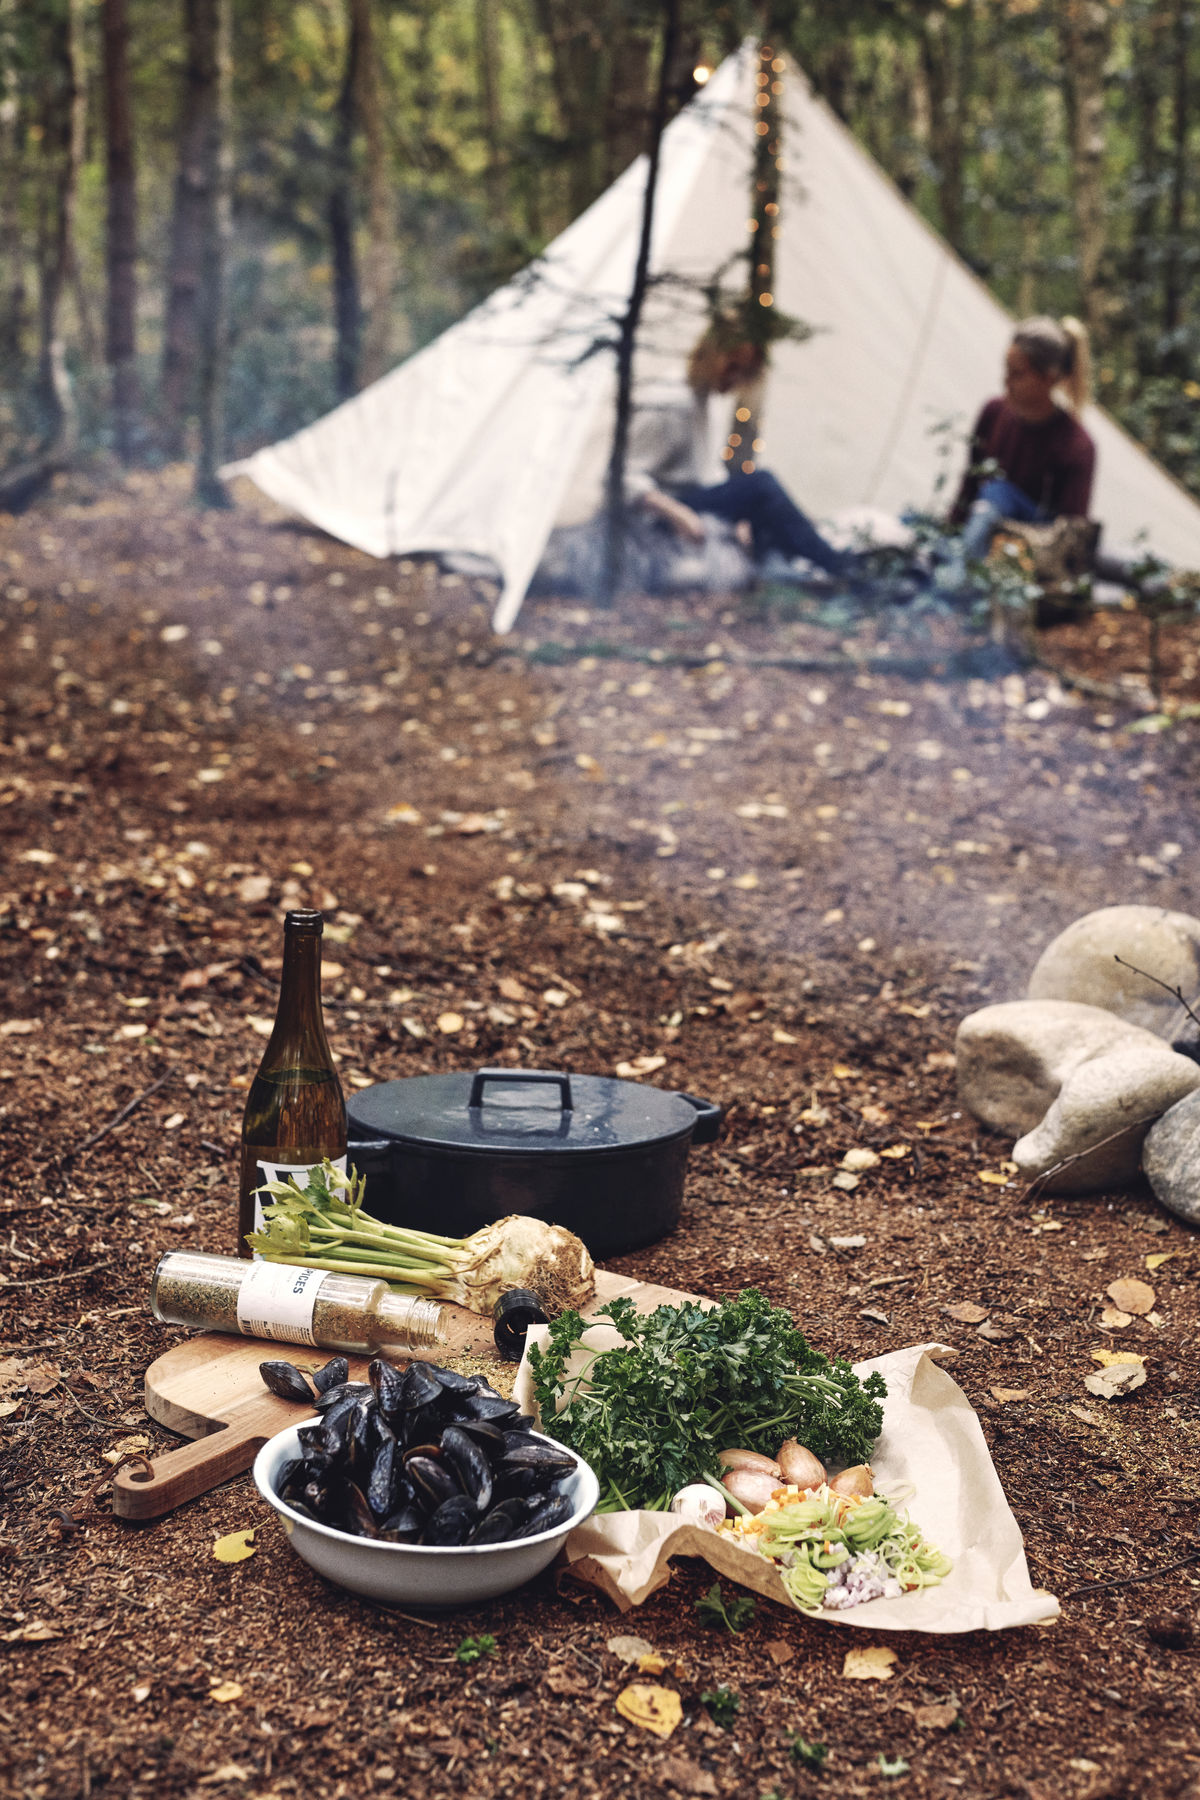 nv_ss19_outdoorcooking_37_ch.jpg